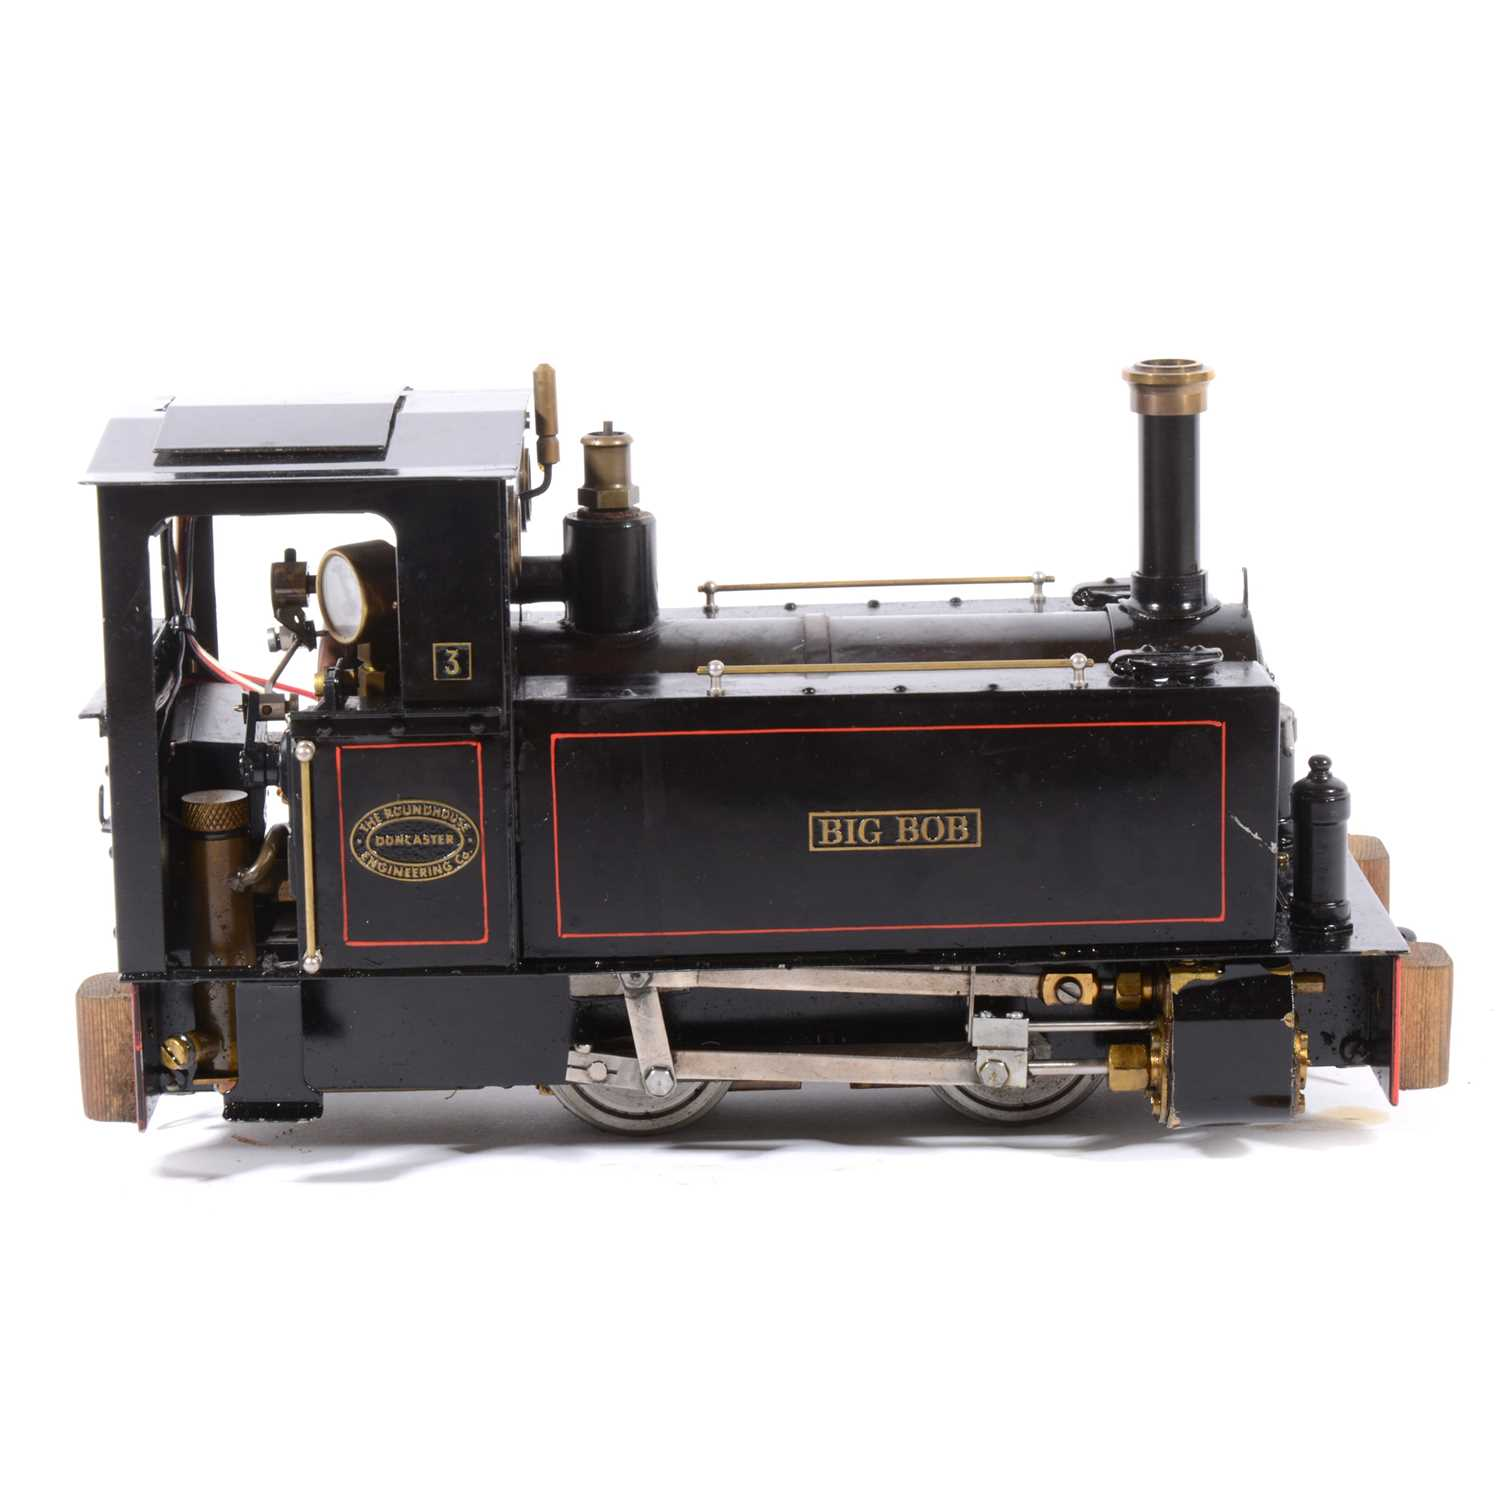 Lot 46-Roundhouse live steam, gauge 1 / G scale, 32mm locomotive, 'Big Bob' 0-4-0, black, in case.